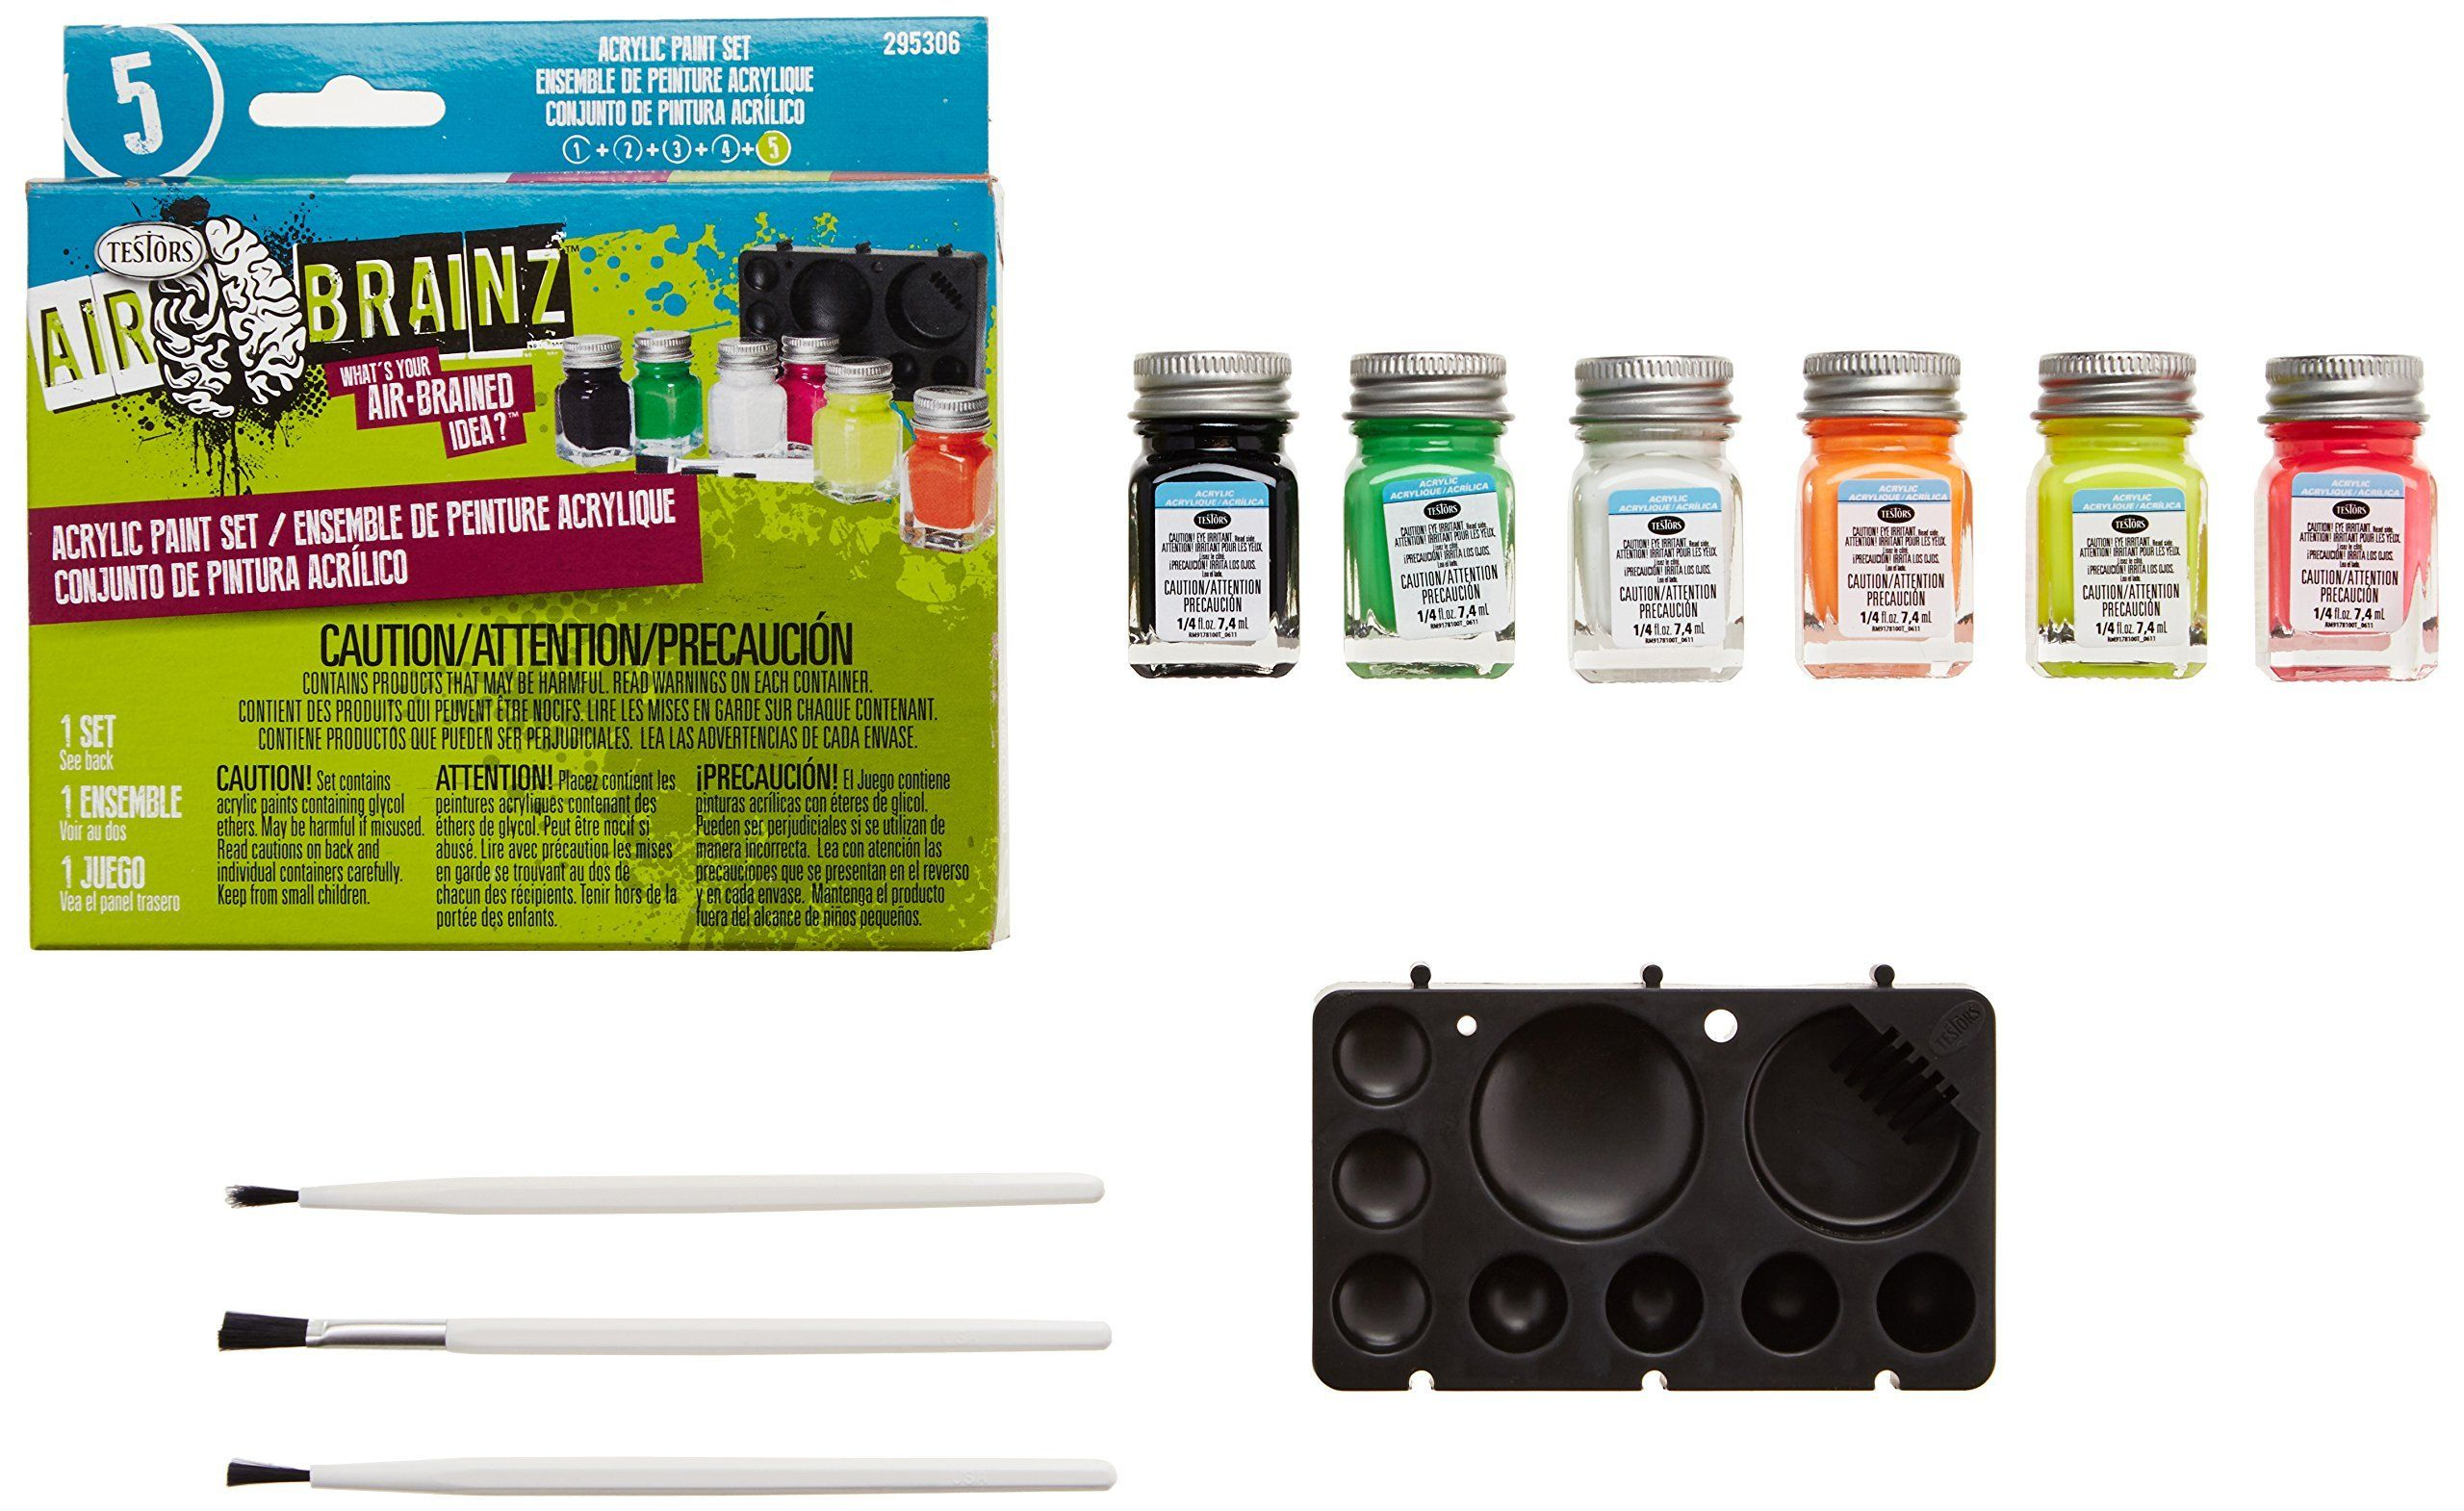 Testors Fluorescent Airbrainz Acrylic Paint Set See This Great Product This Is An Affiliate Link Artpaintingki Acrylic Paint Set Paint Set Painting Kits